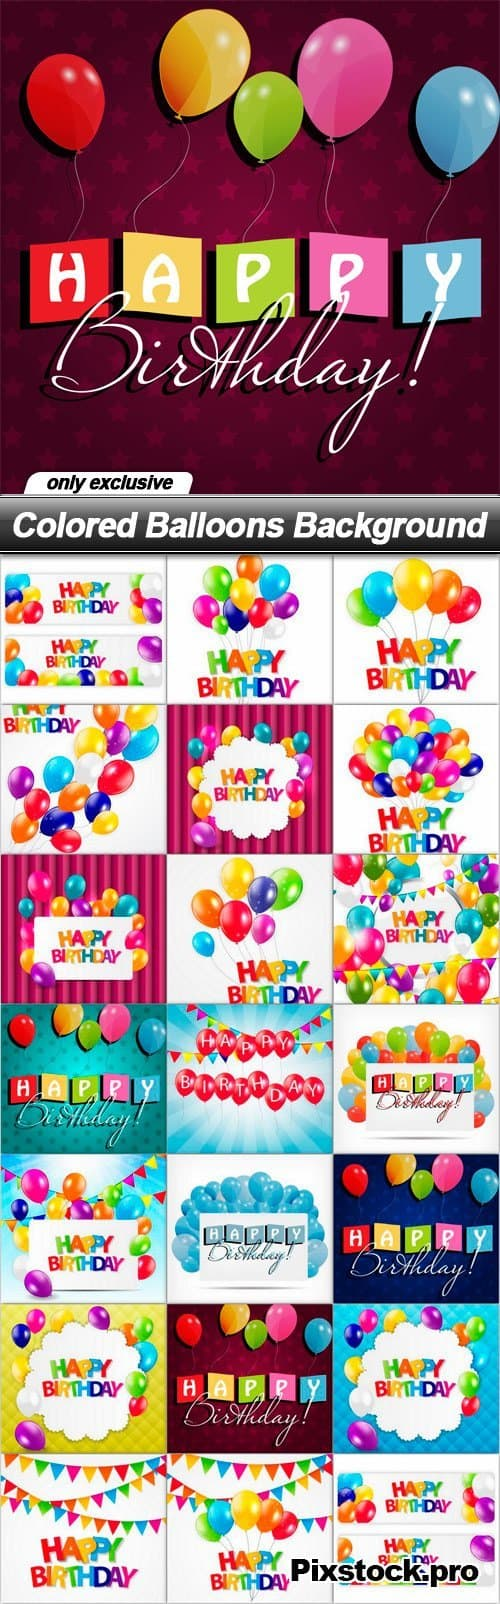 Colored Balloons Background – Happy Birthday